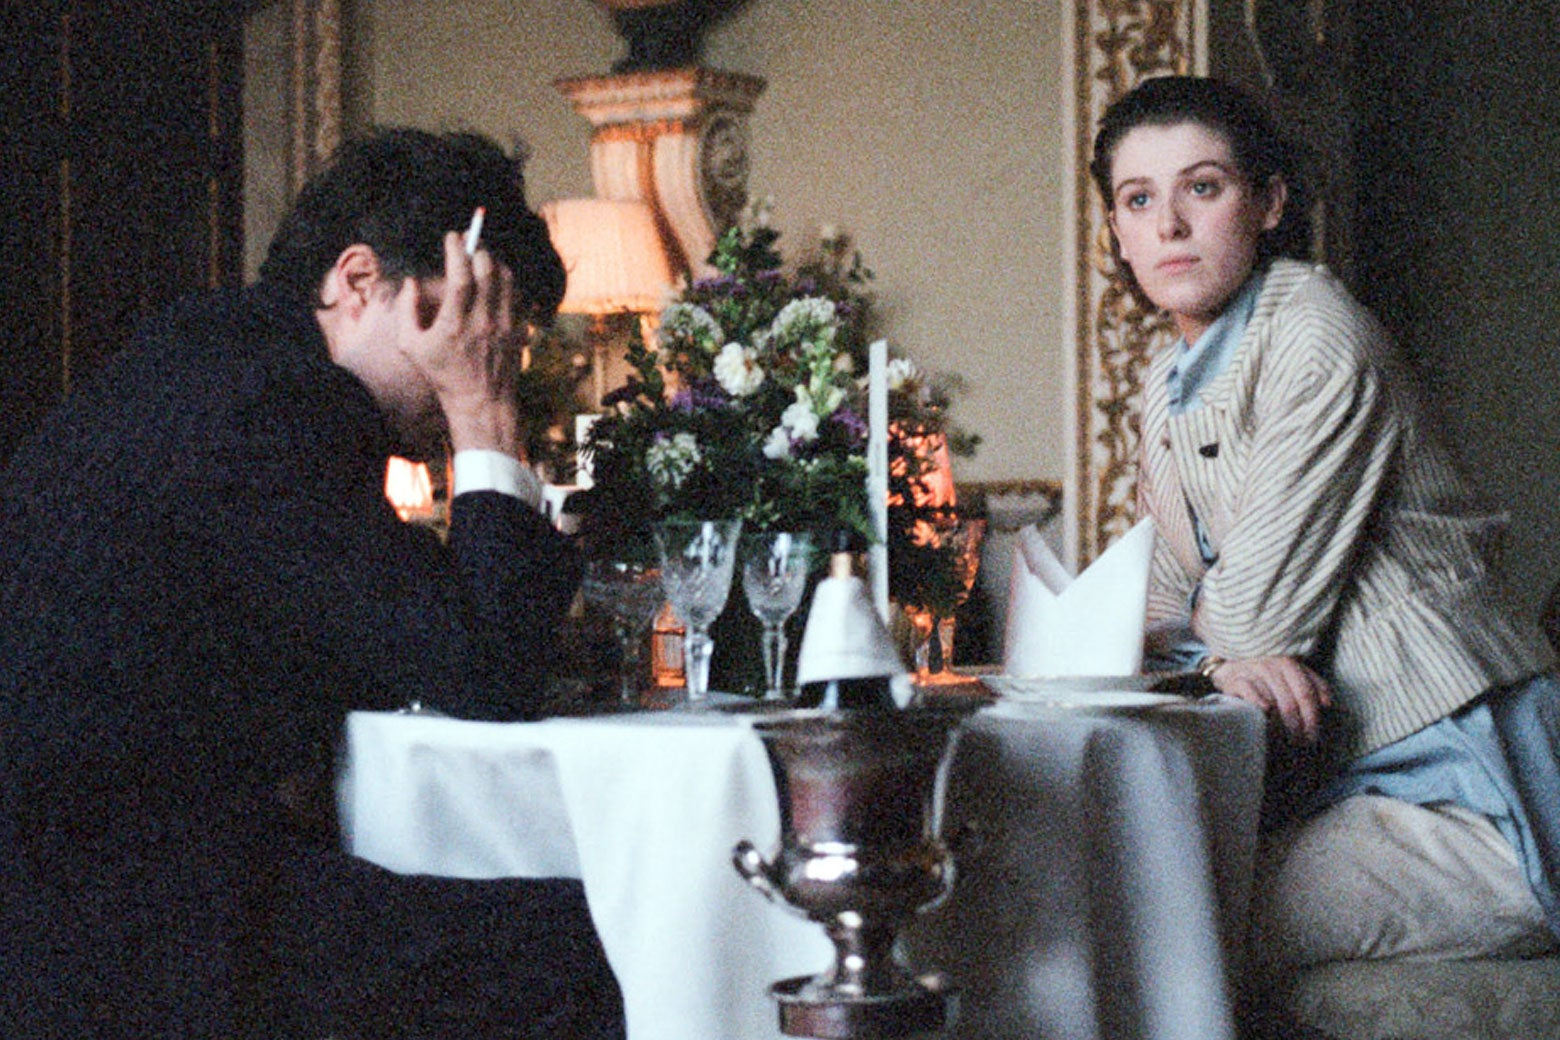 Tom Burke and Honor Swinton-Byrne dine at a fancy establishment in The Souvenir.